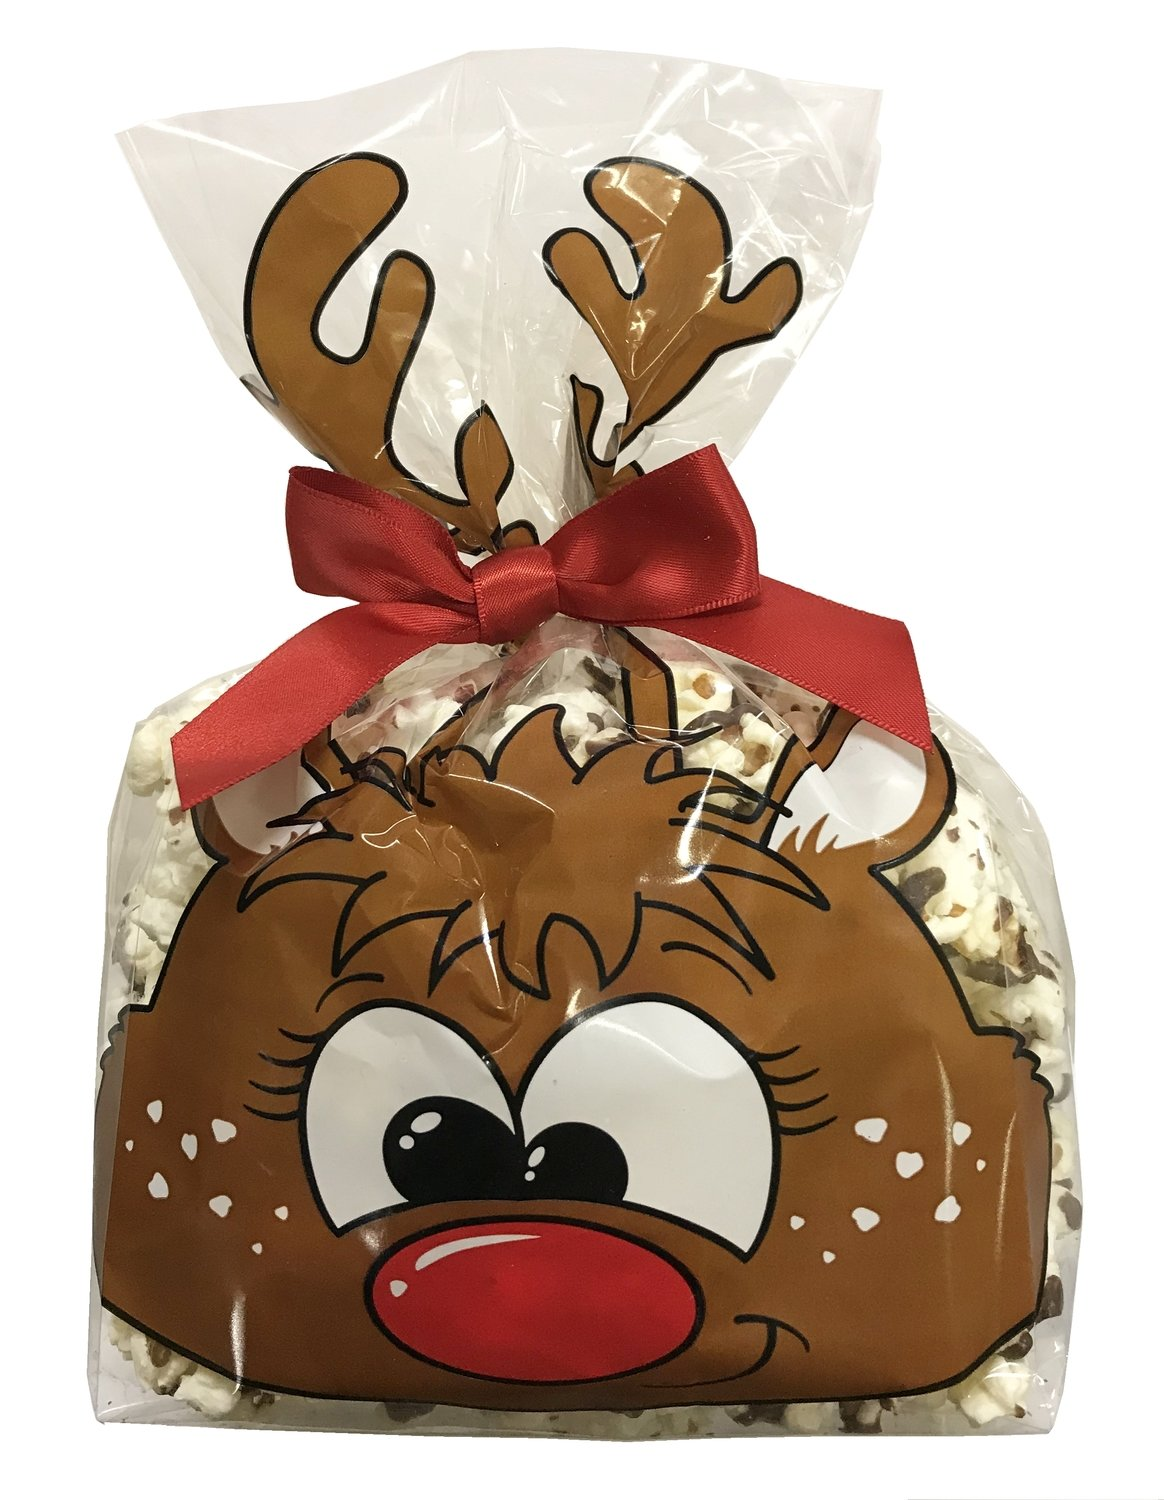 Gourmet Chocolate Drizzled Popcorn 3 oz. Reindeer Bag w/bow